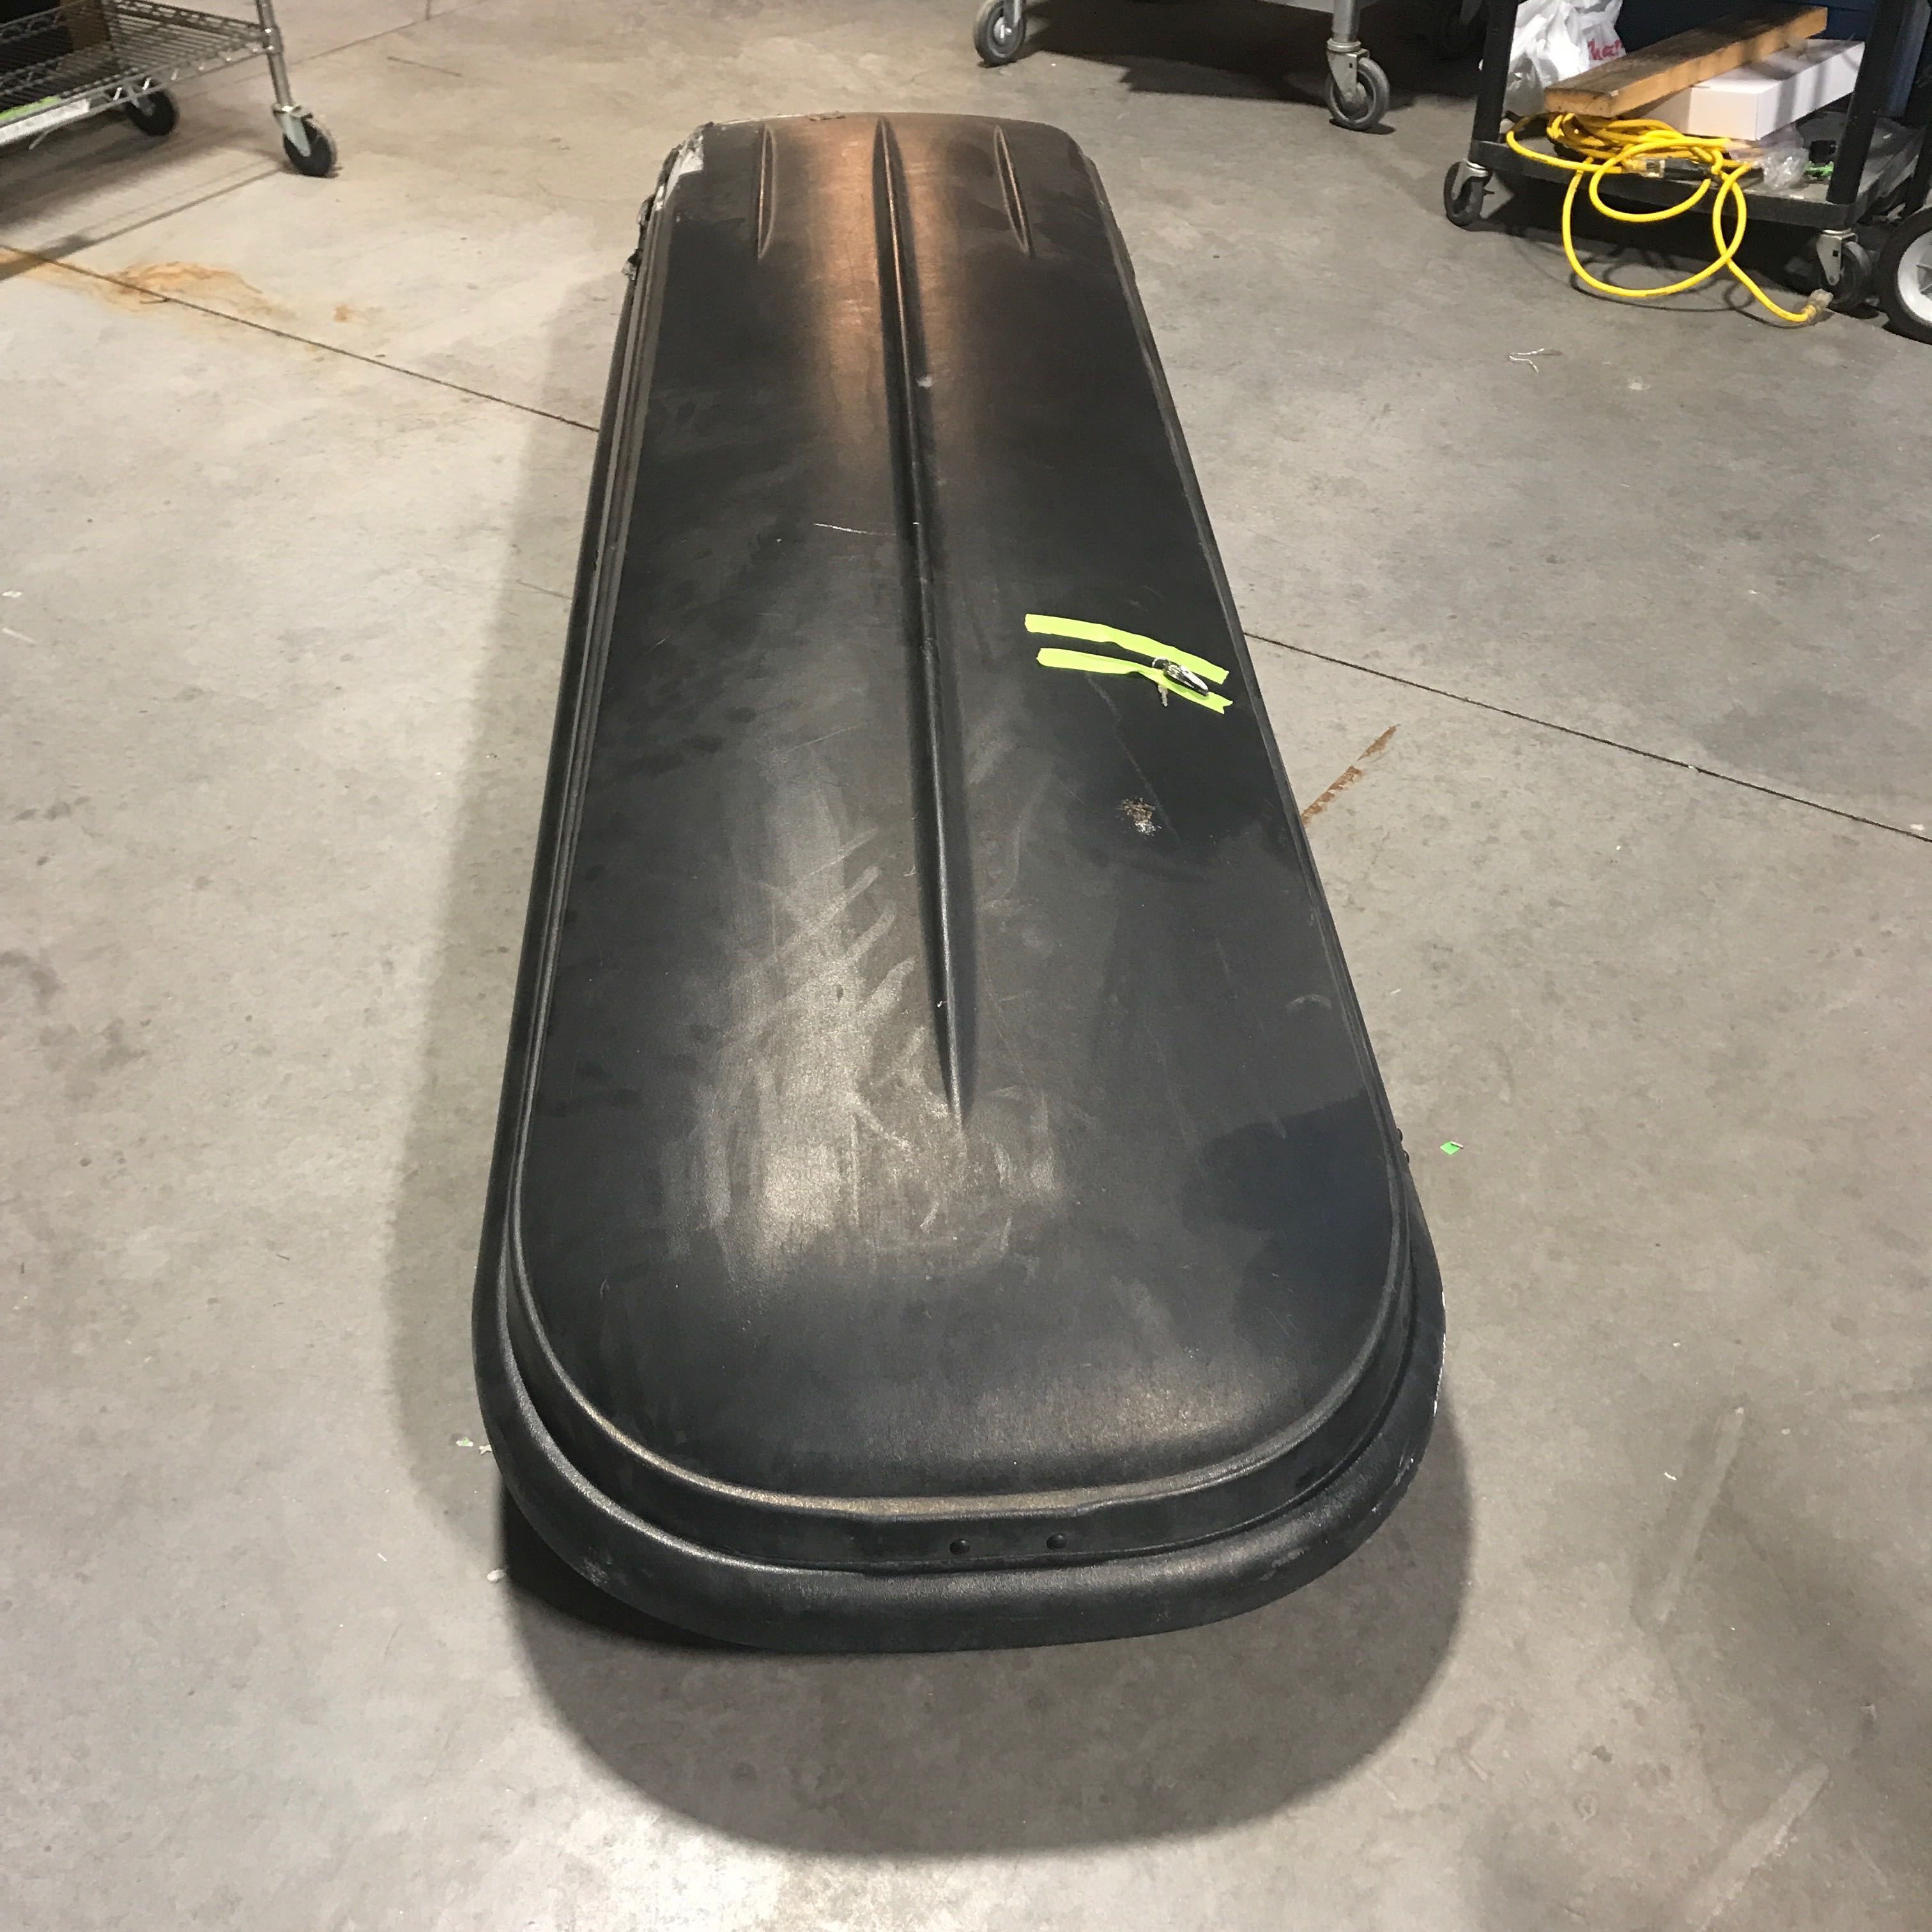 Thule Moiuntaineer Car Travel Case Right Rear Corner is Damaged